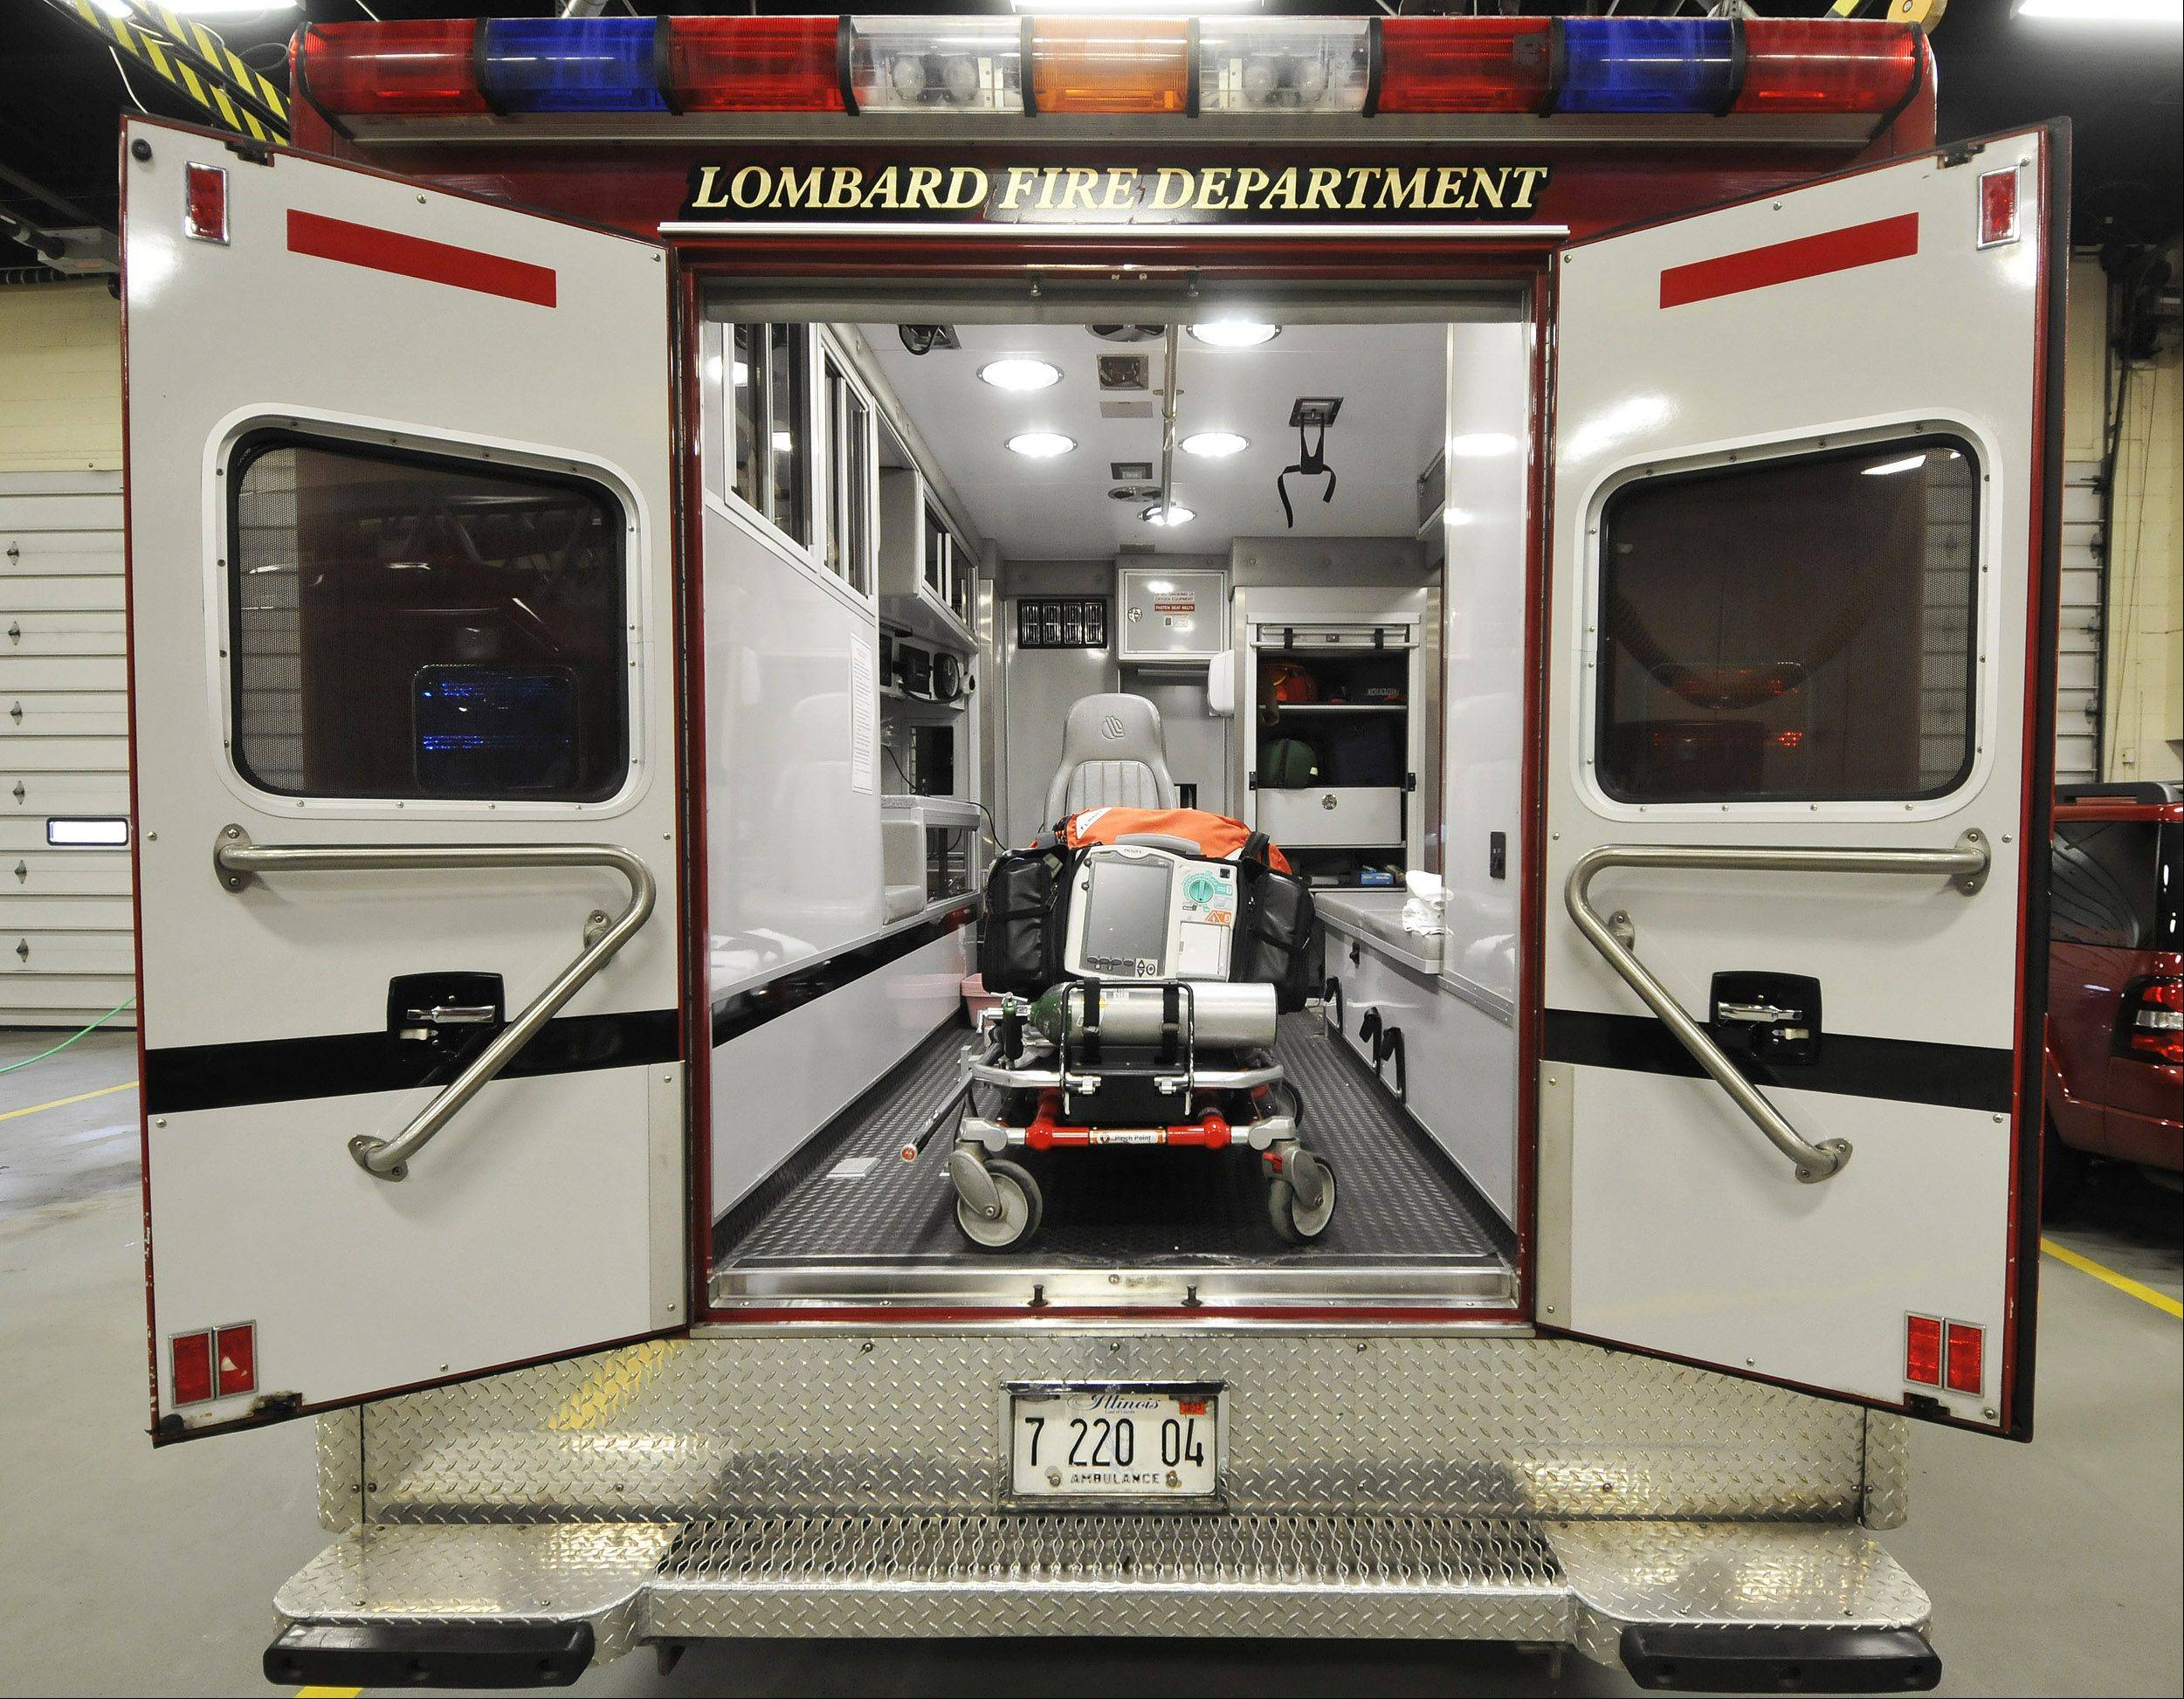 The Lombard Fire Department is two firefighters short of its full authorized staffing of 63, which fire department officials say sometimes makes it difficult to keep a third ambulance staffed and ready to respond to emergencies.